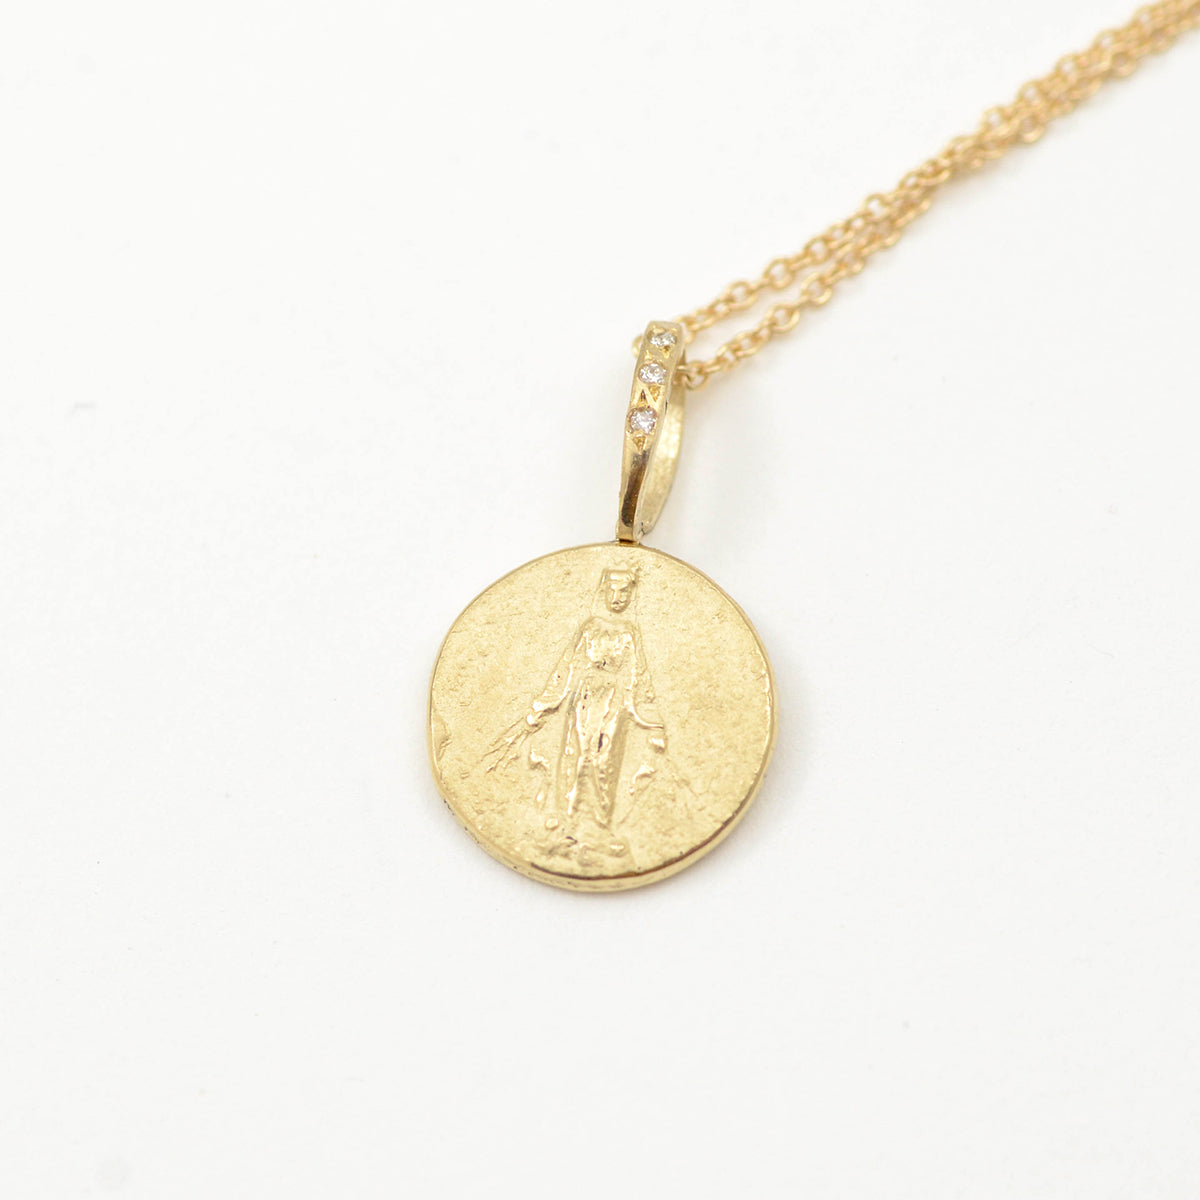 Robin Haley artifacts collection lady of the light pendant in 14kt yellow gold